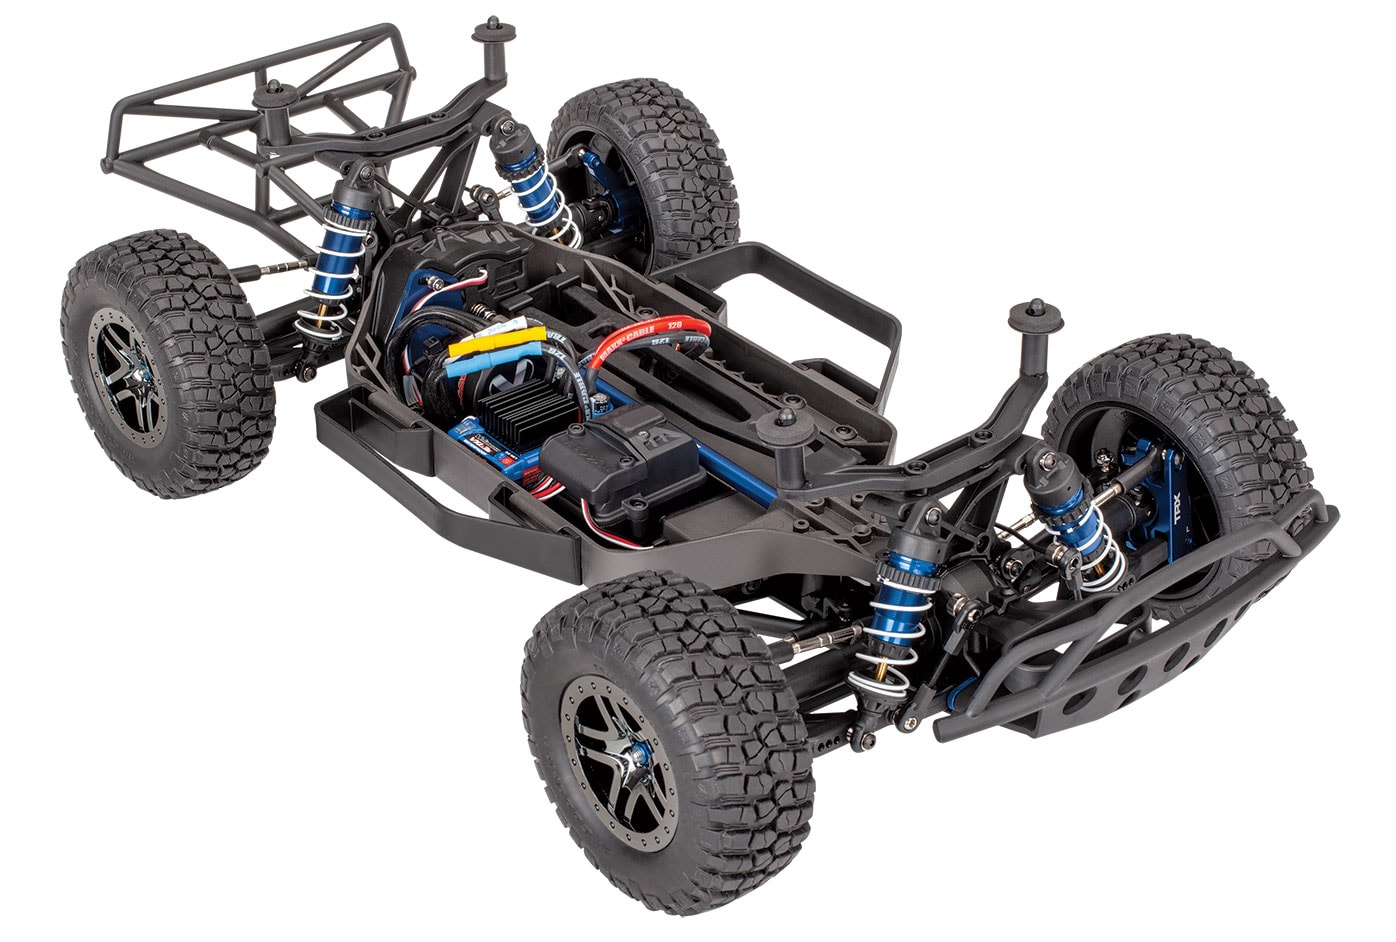 2018 Traxxas Slash Ultimate - Chassis